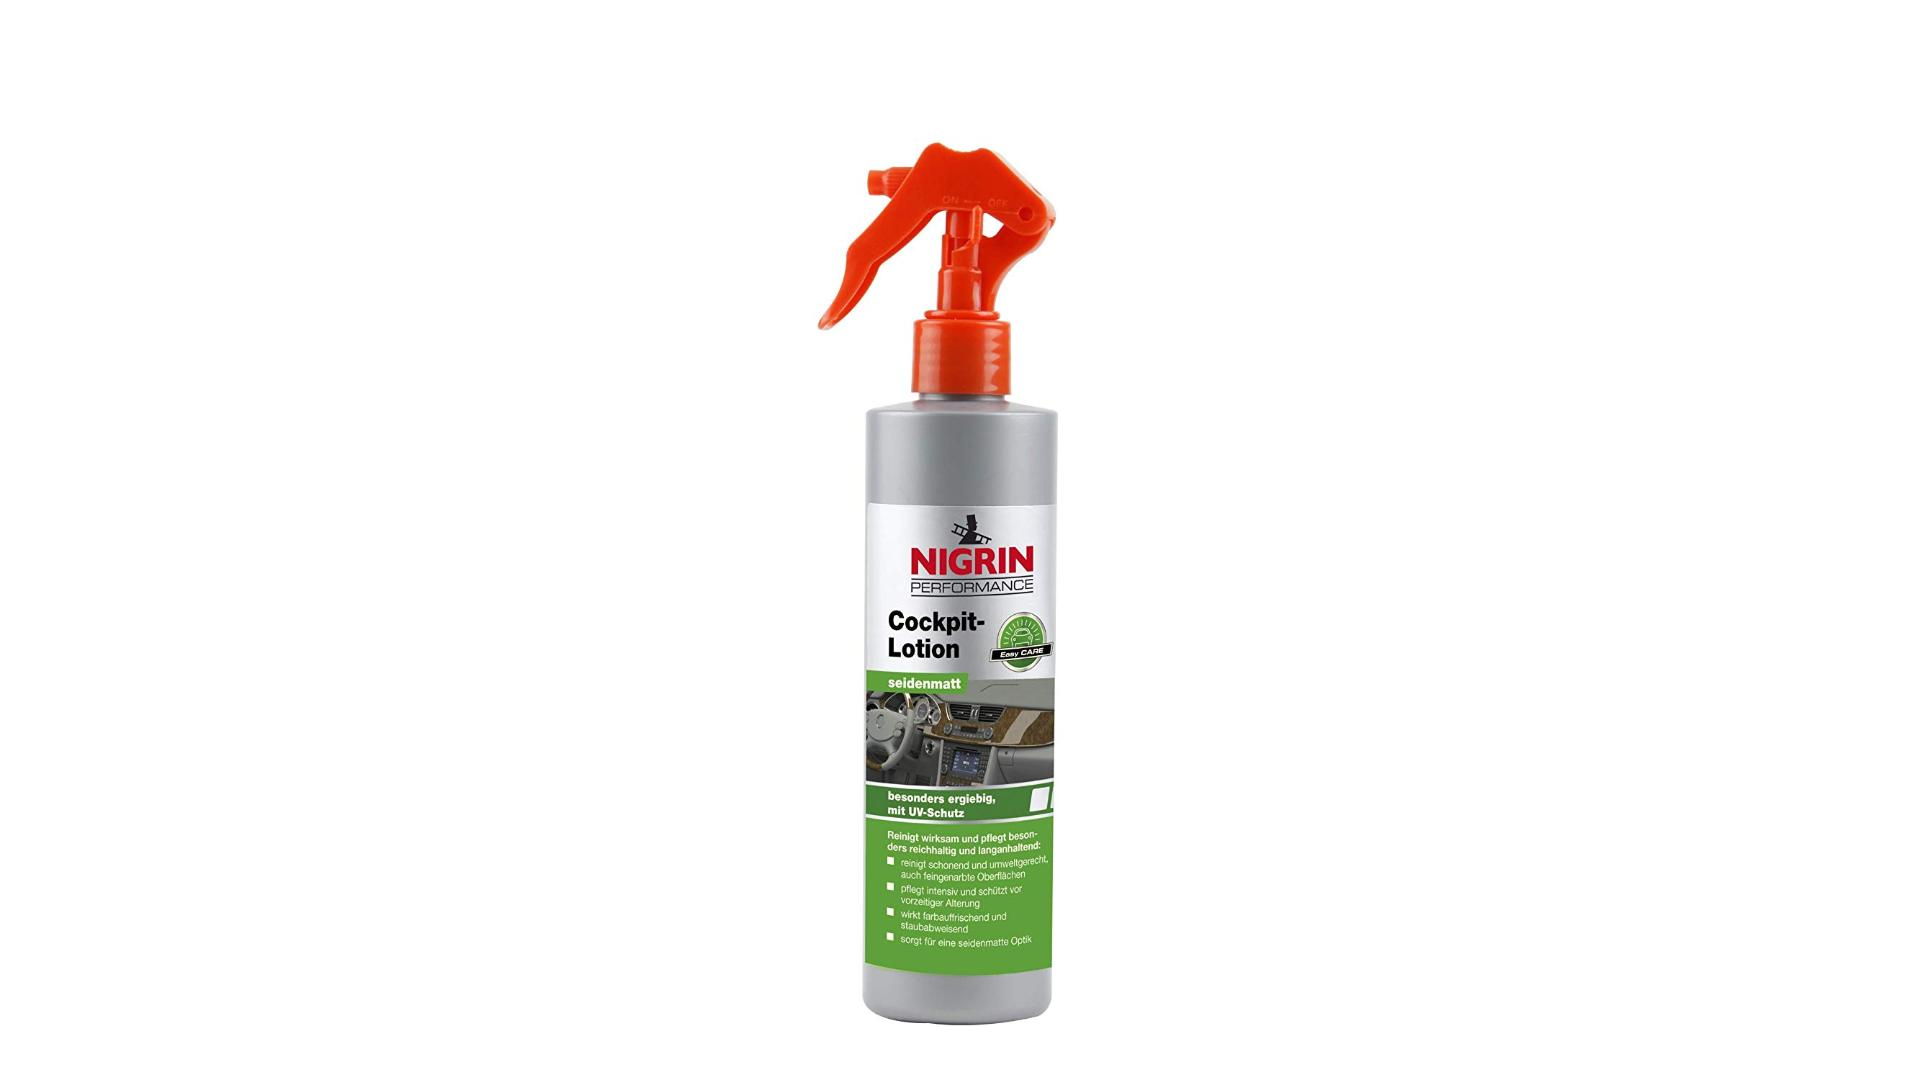 NIGRIN Cockpit Emulsion 300ml